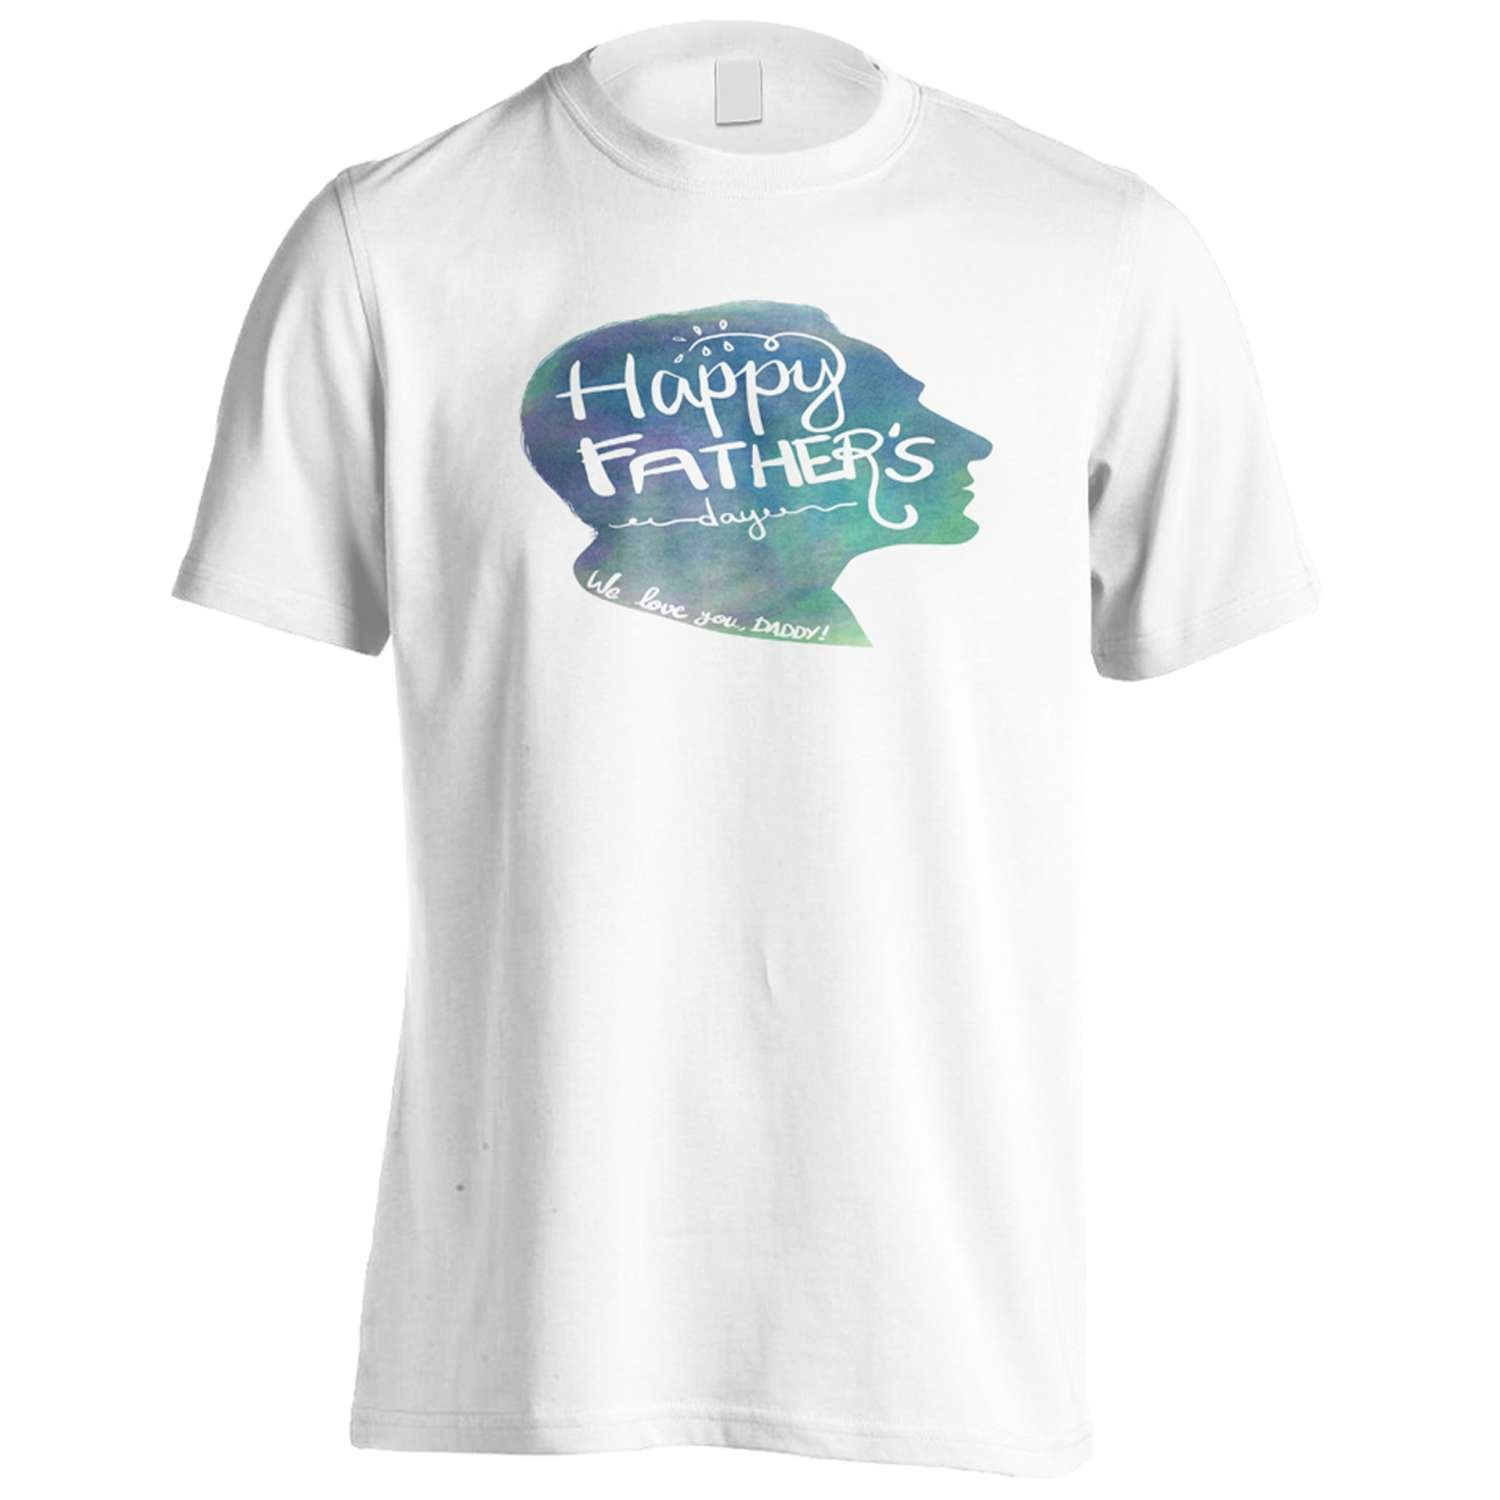 Happy Fathers Day We Love You Men's T-Shirt Tee o26m